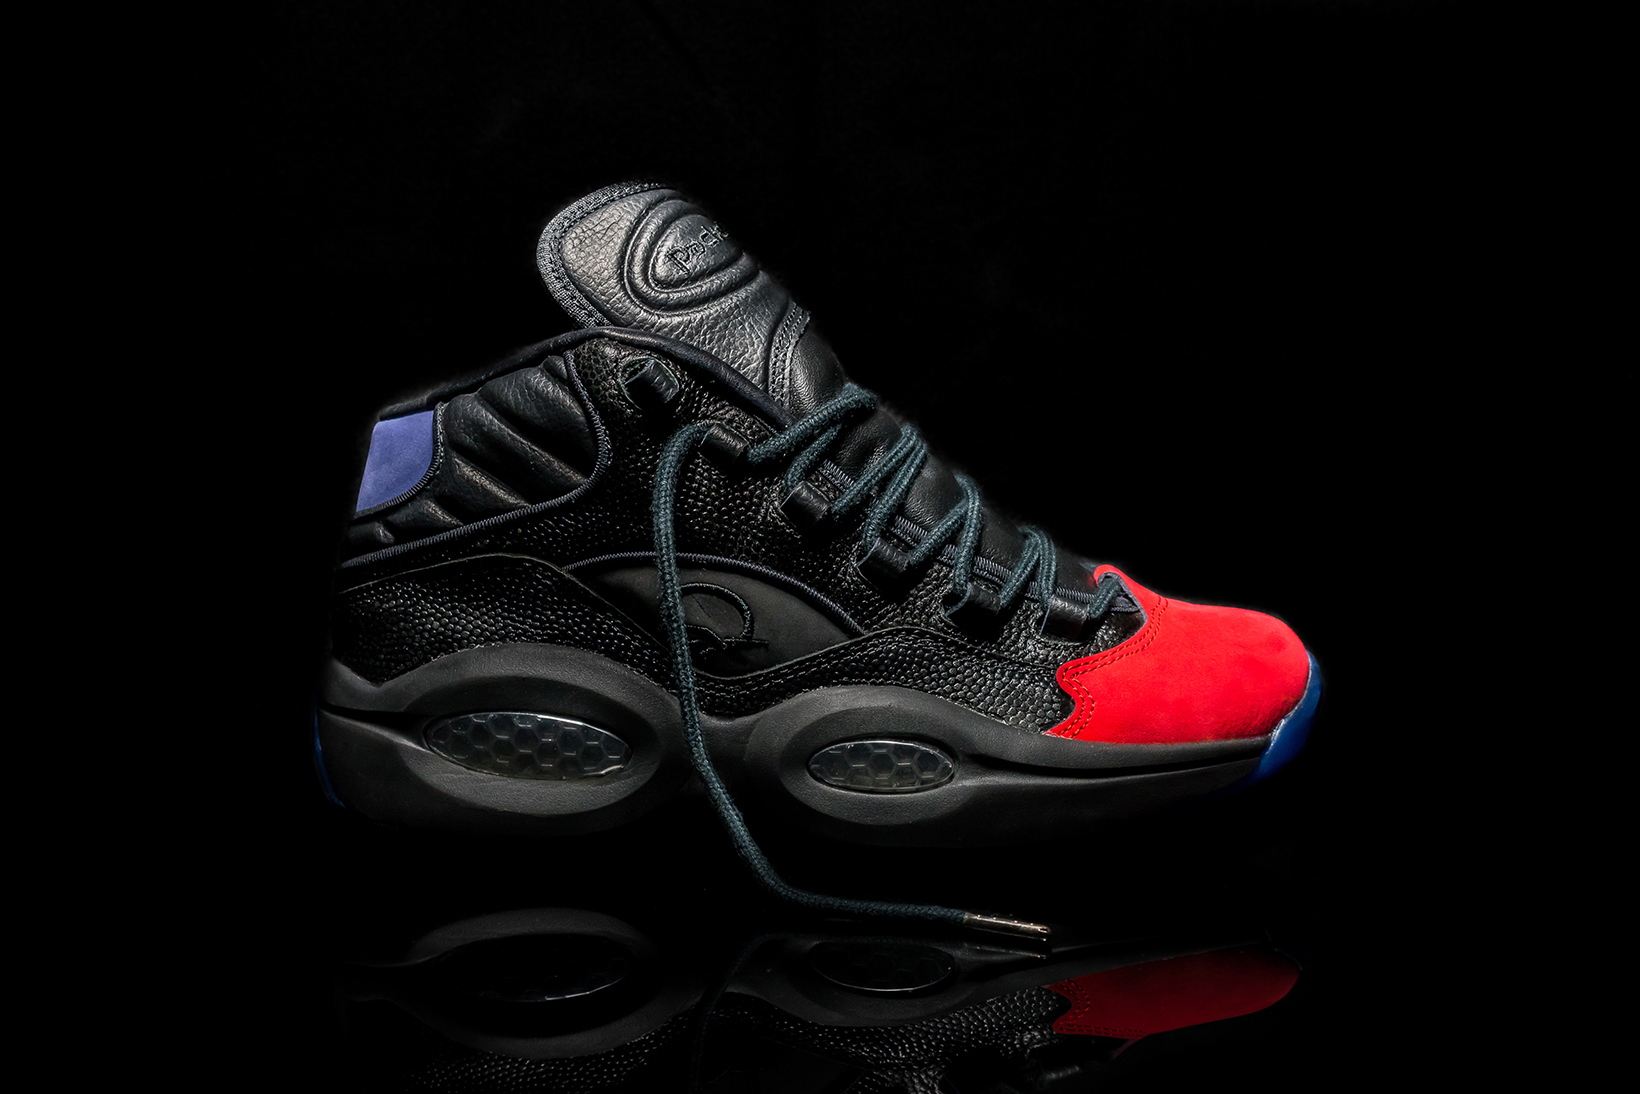 """Packer Shoes Celebrates Allen Iverson's Hall of Fame Career With """"Curtain Call"""" Reebok Question"""